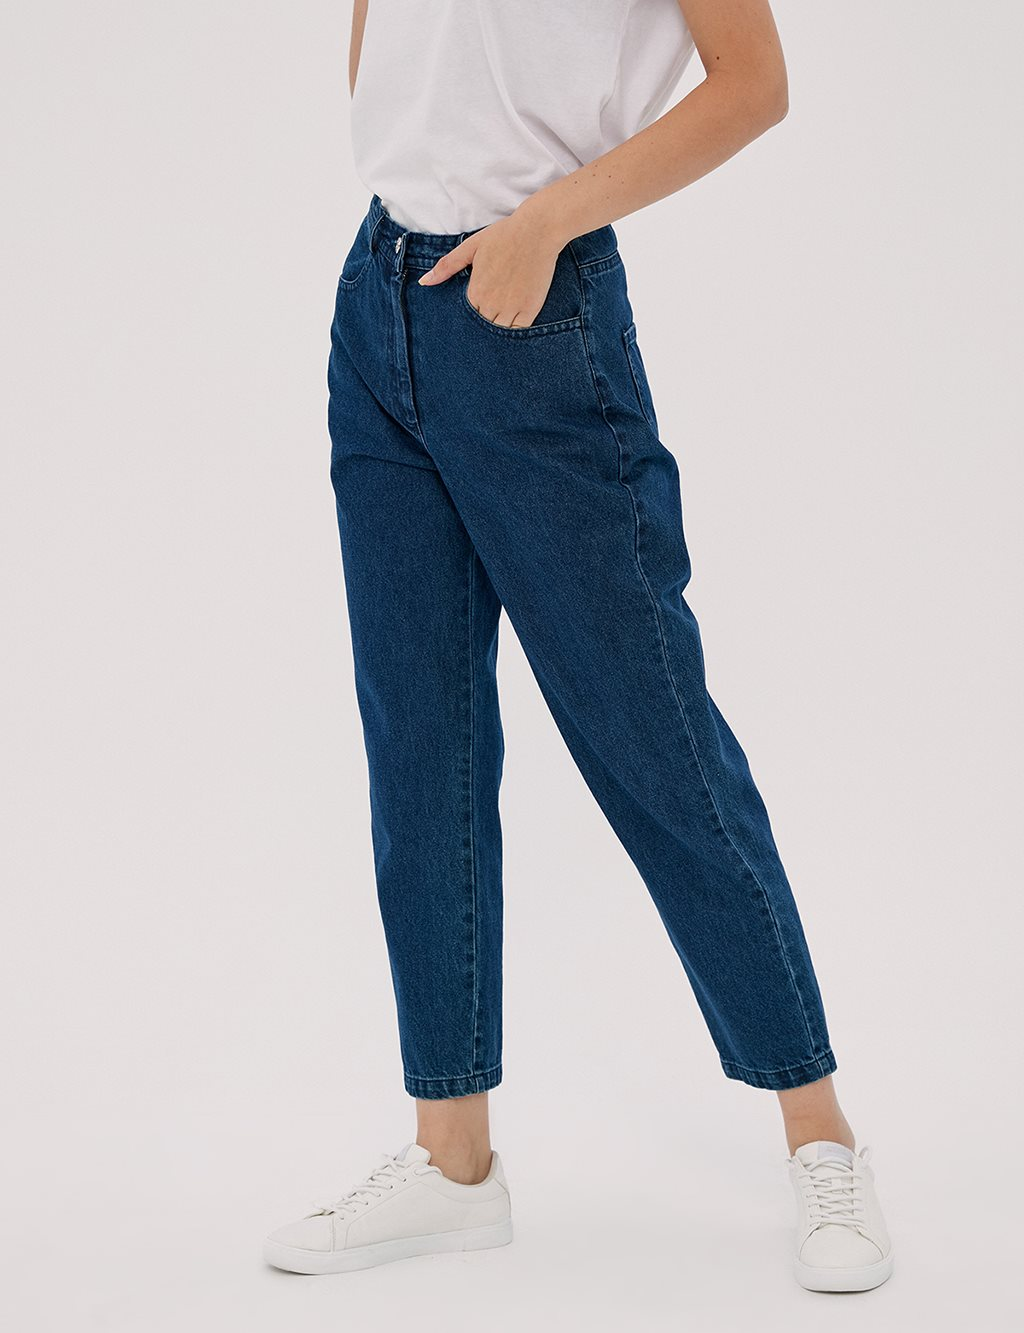 Basic Mom Jeans Lacivert A20 19007